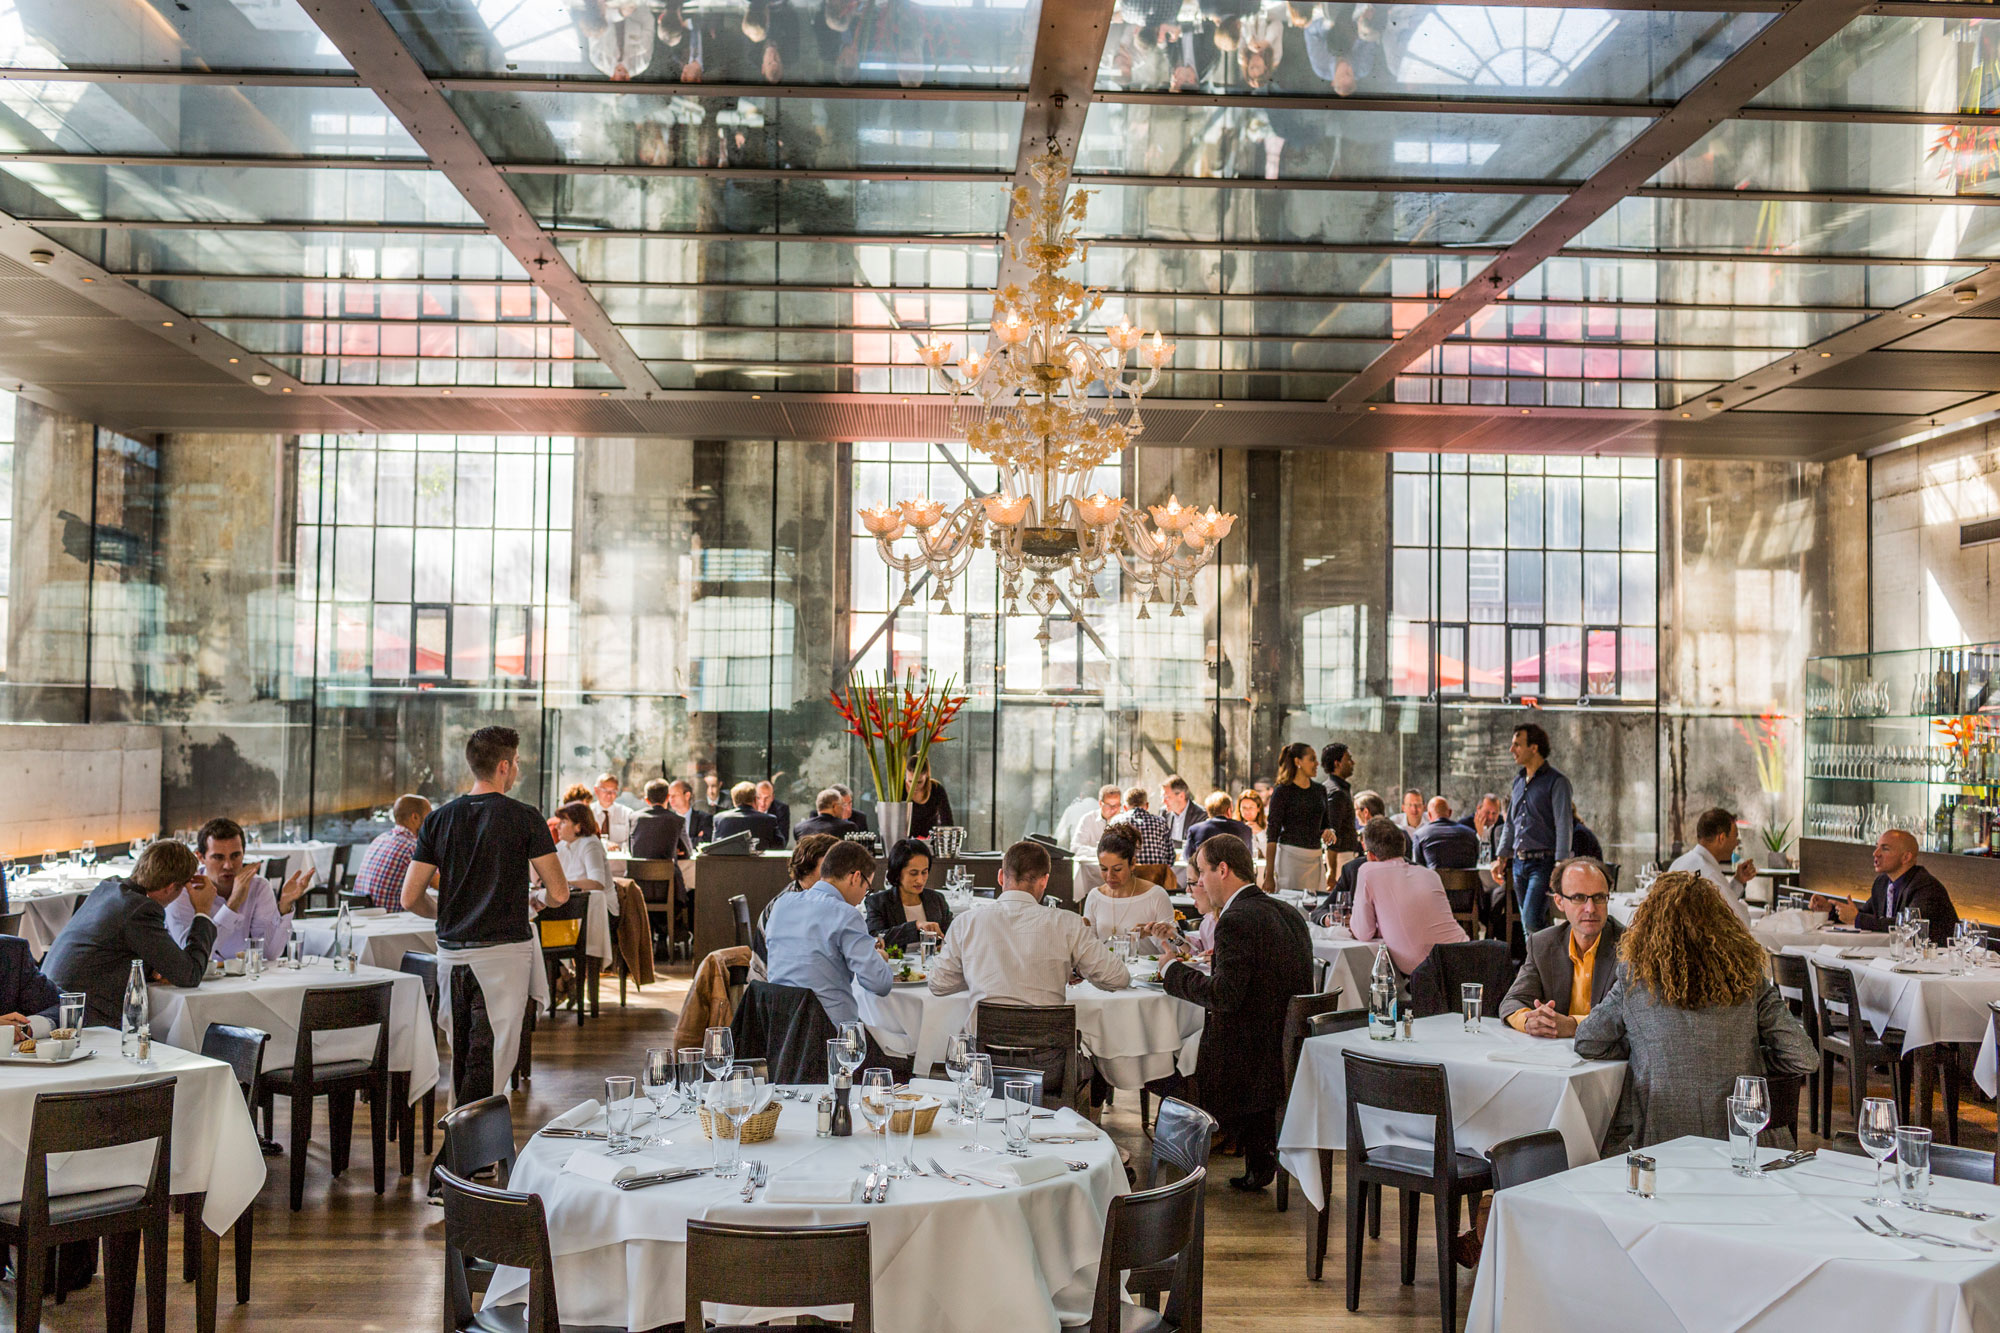 Zurich's restaurant scene is just as diverse as the city itself